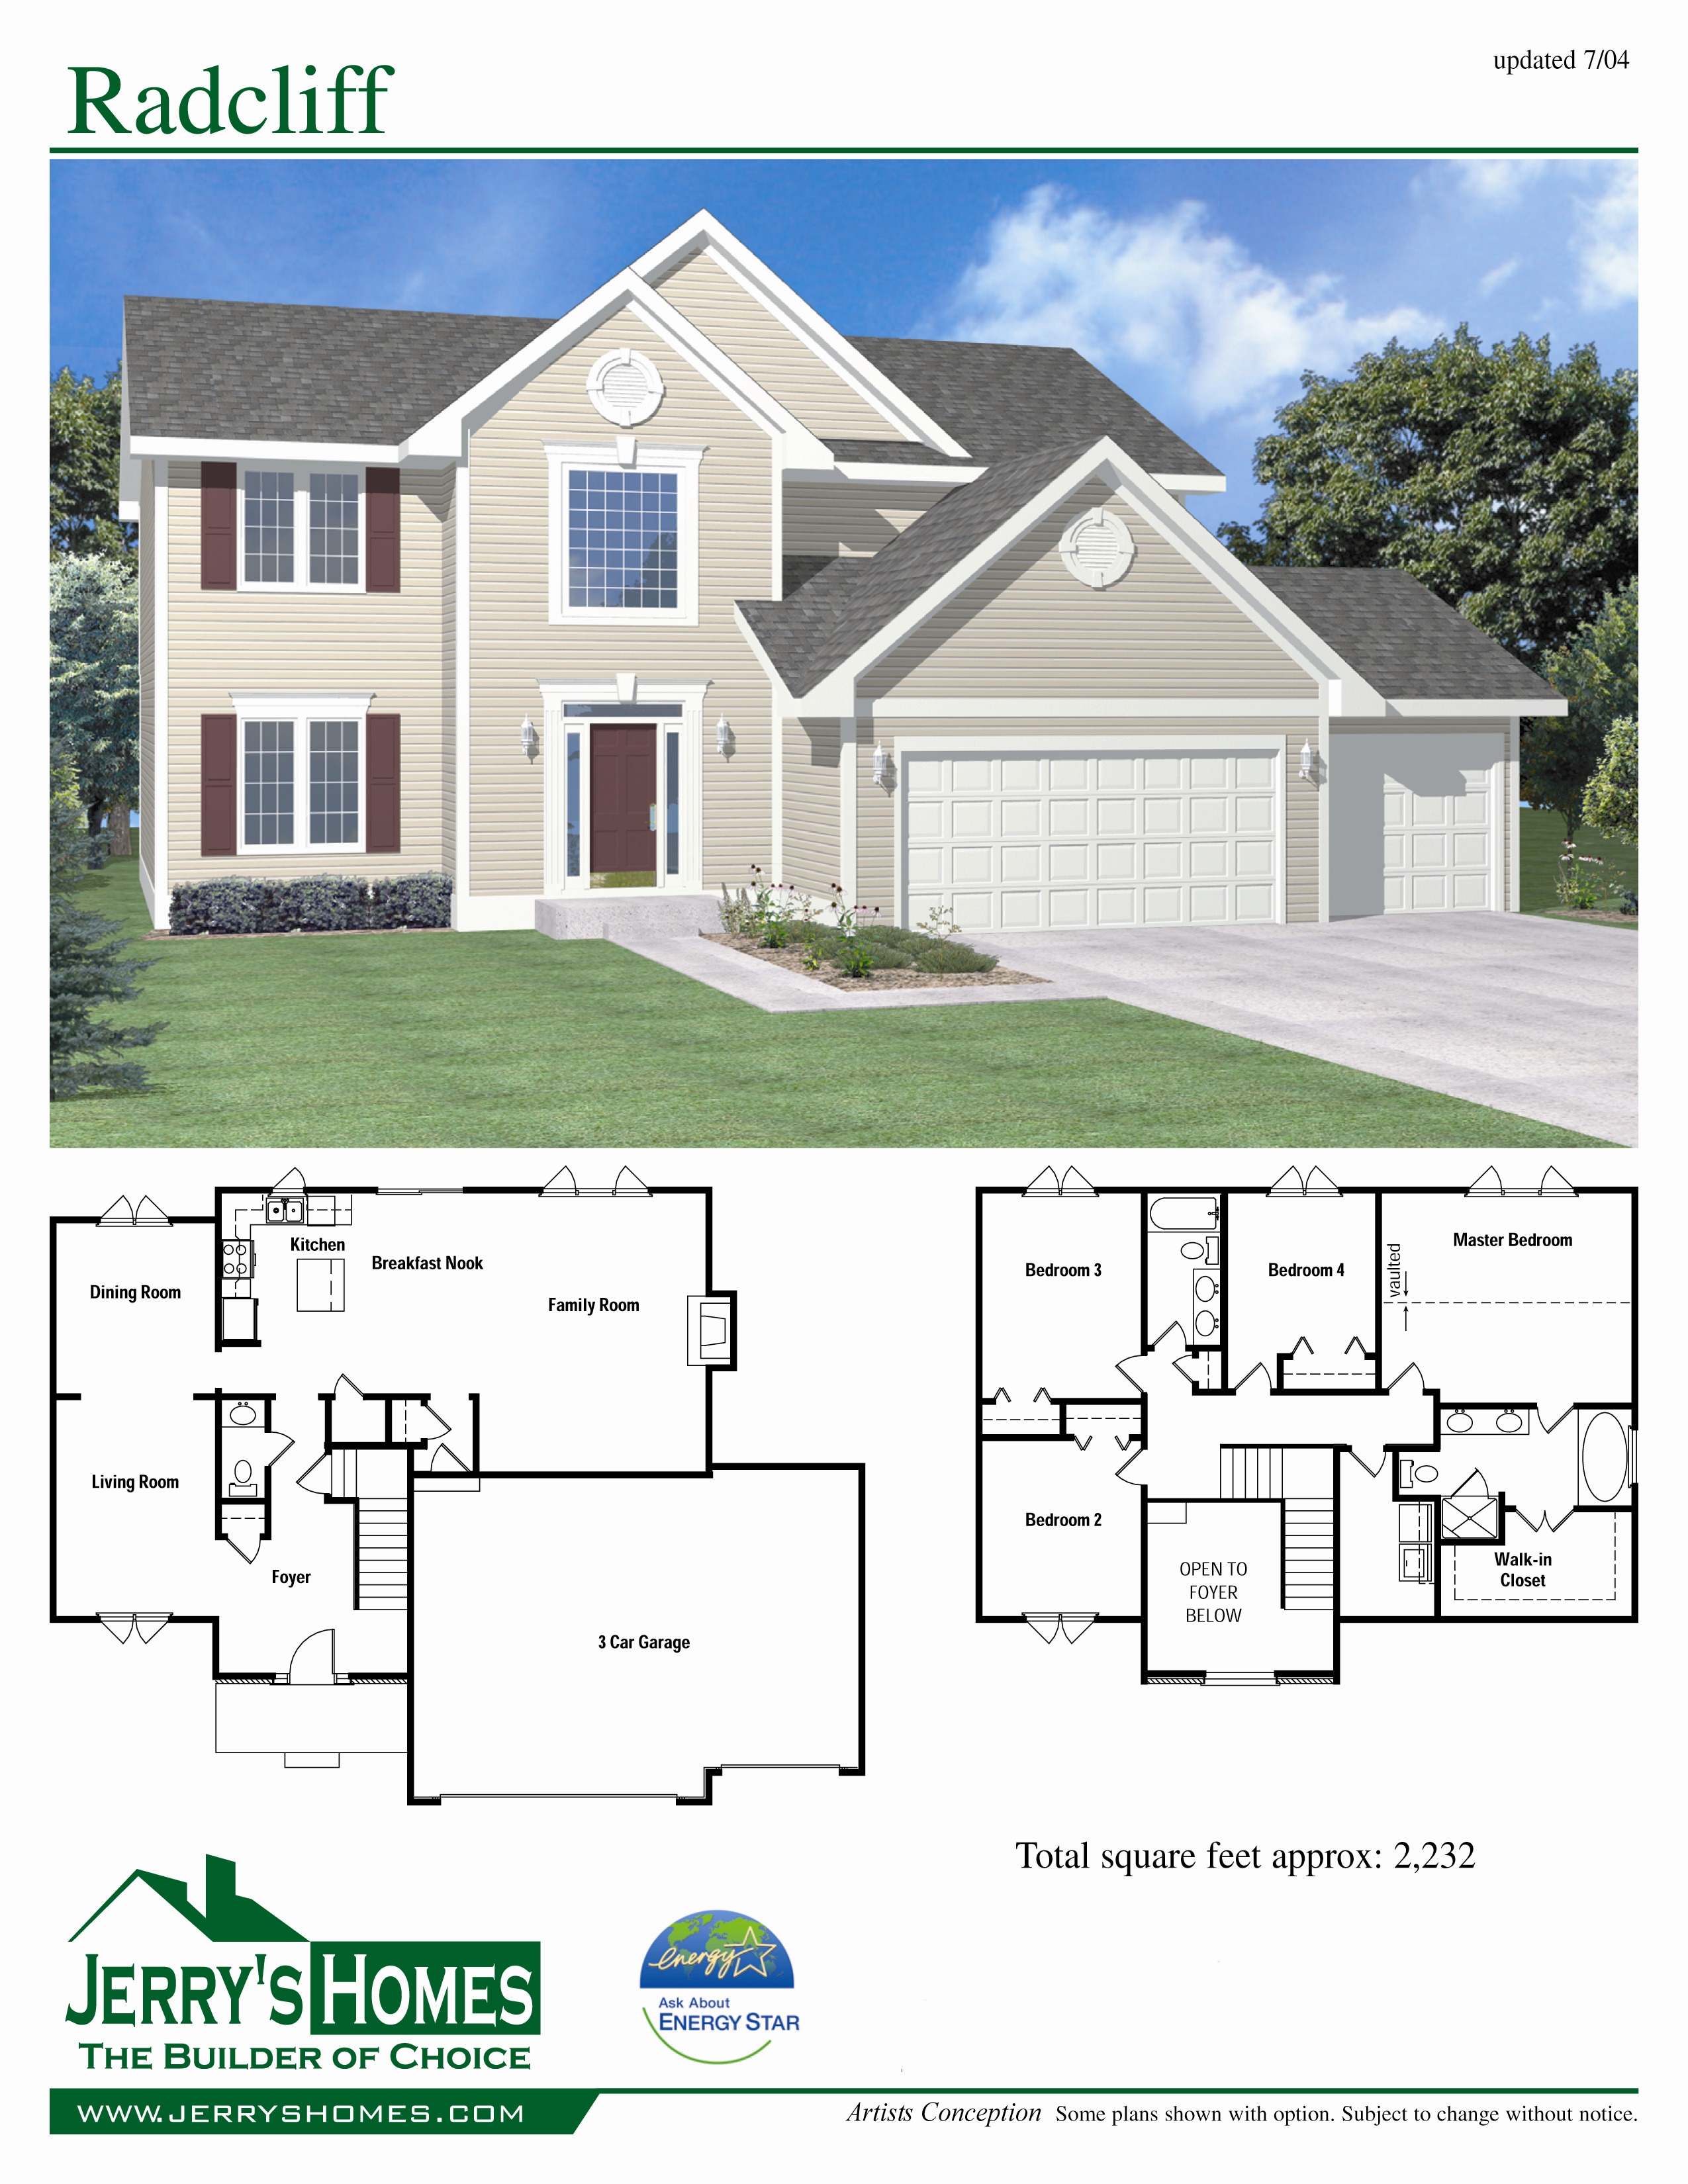 New Two Story House Plans New Bed Story House Plans with Bedrooms toddler Twin Bathroom